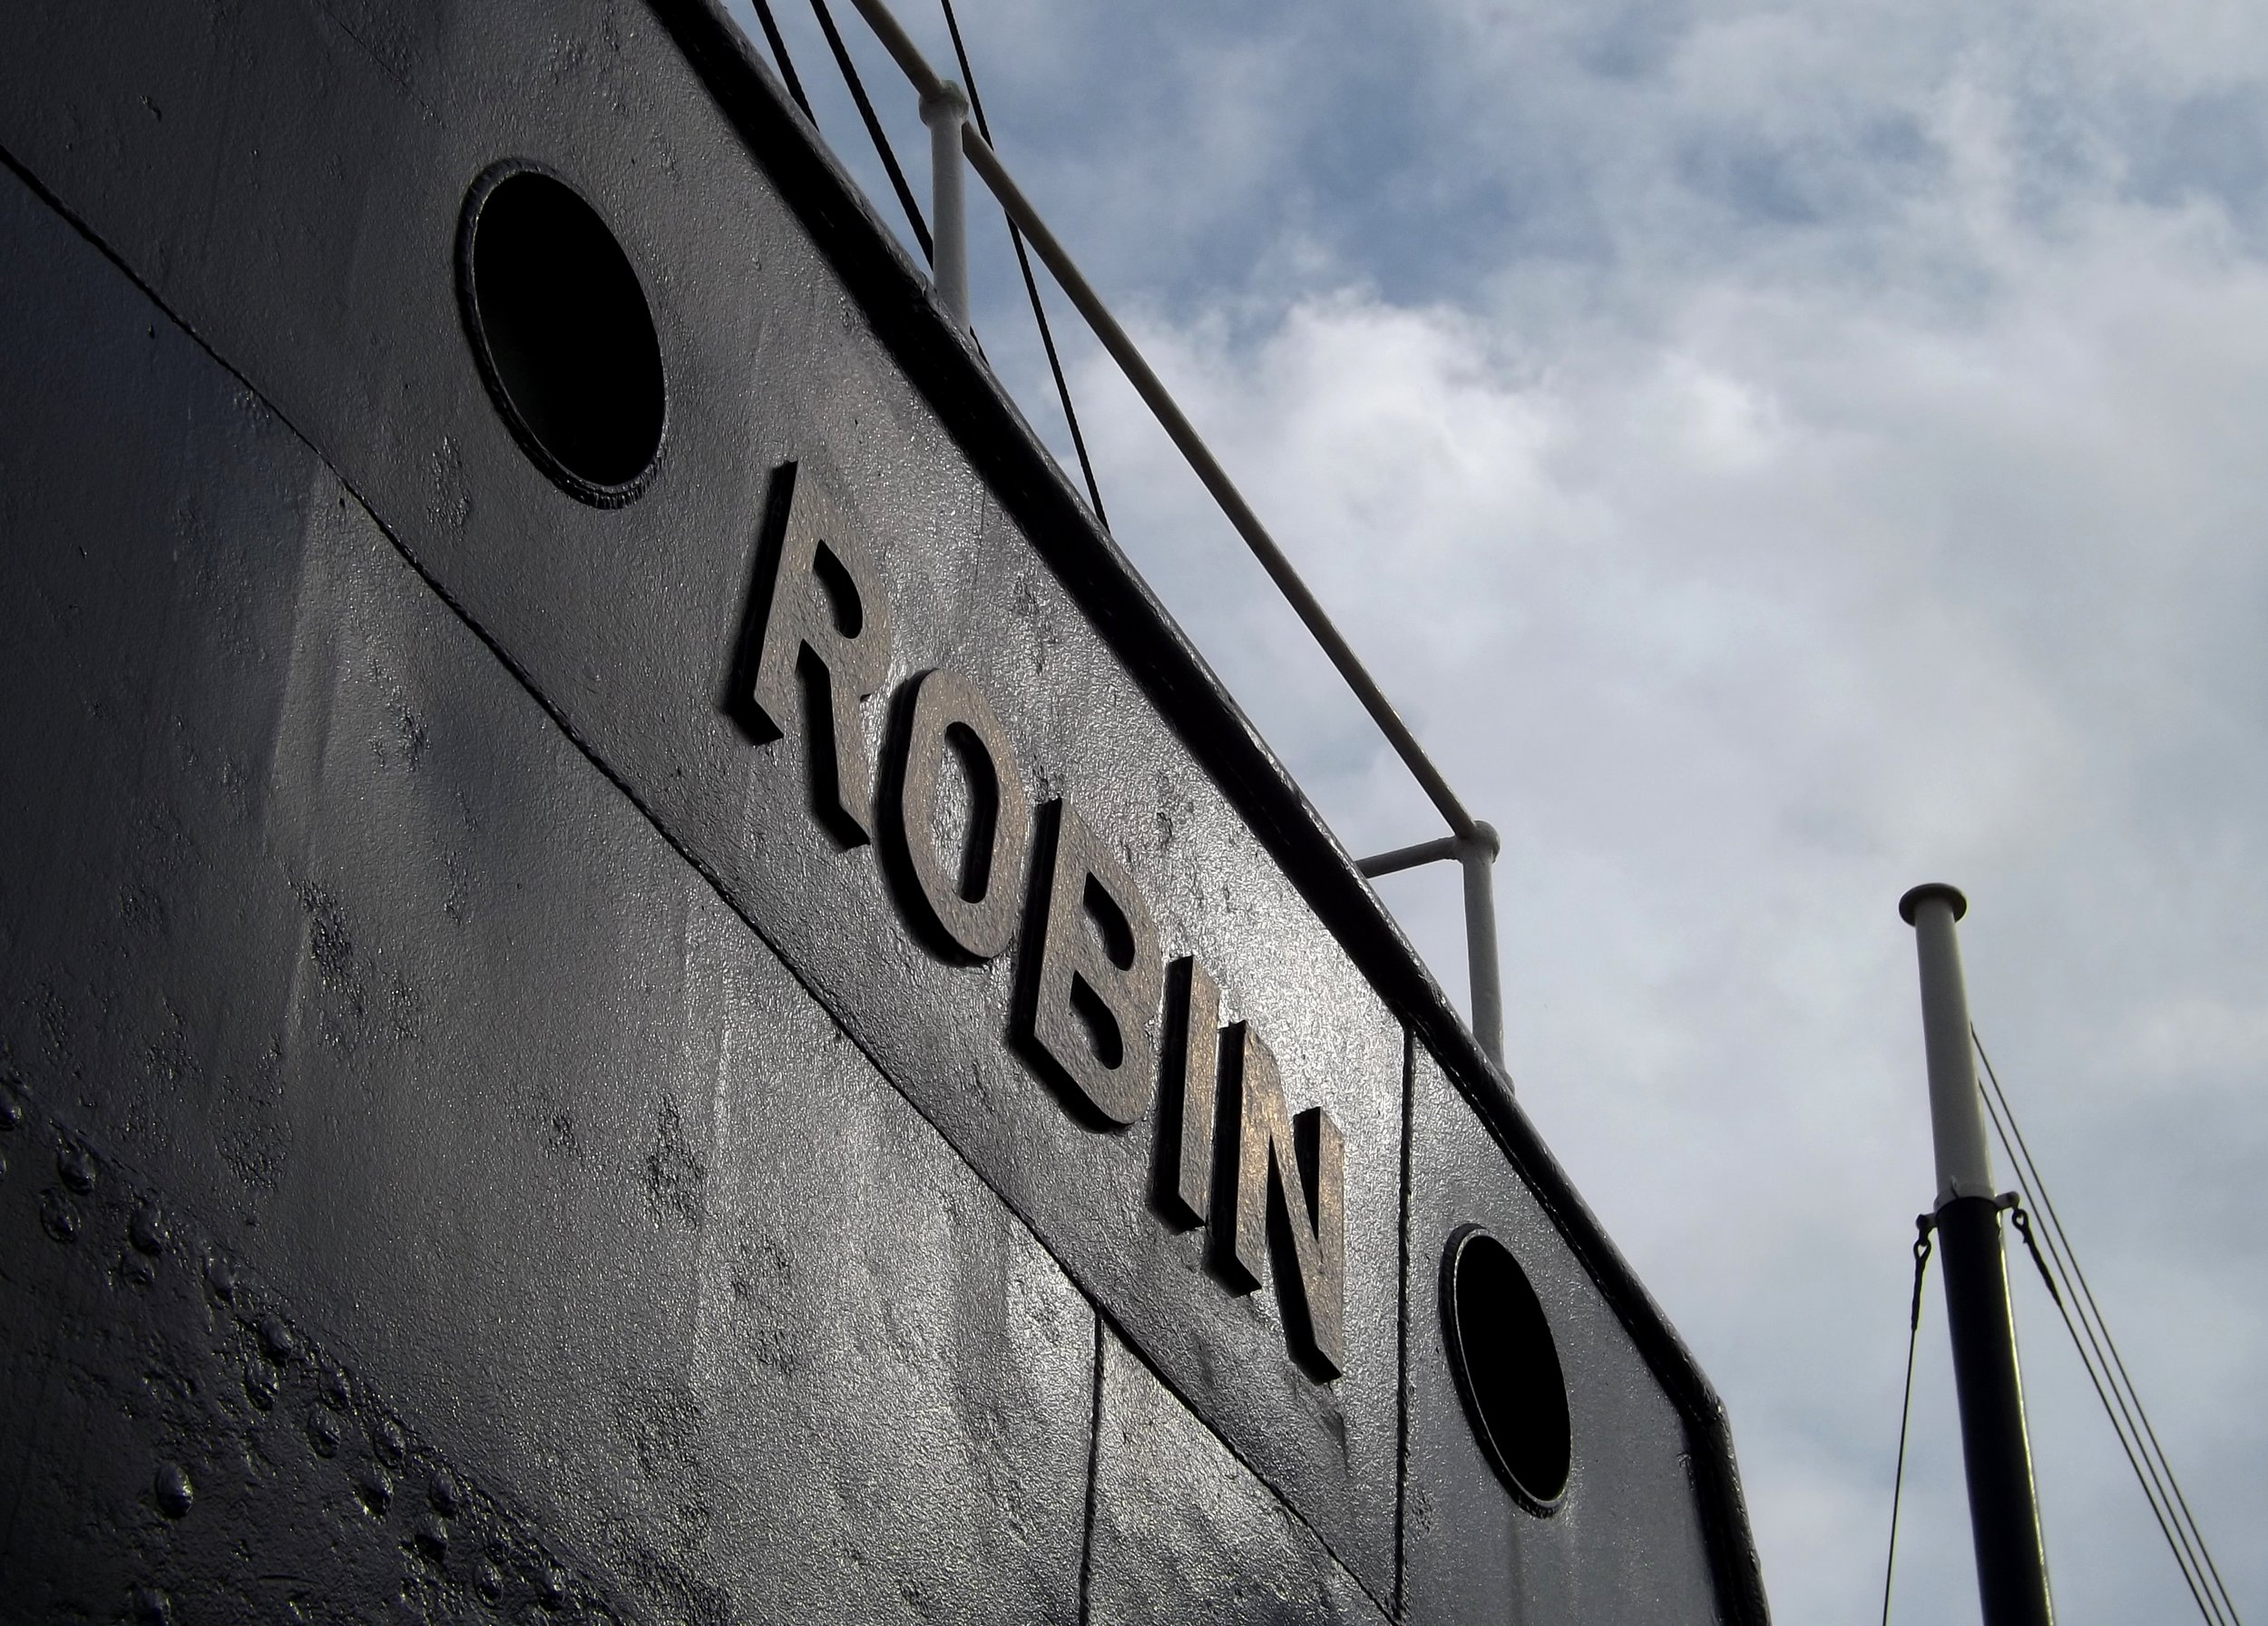 SS Robin (6) @ Royal Victoria Dock 27-08-14.jpg